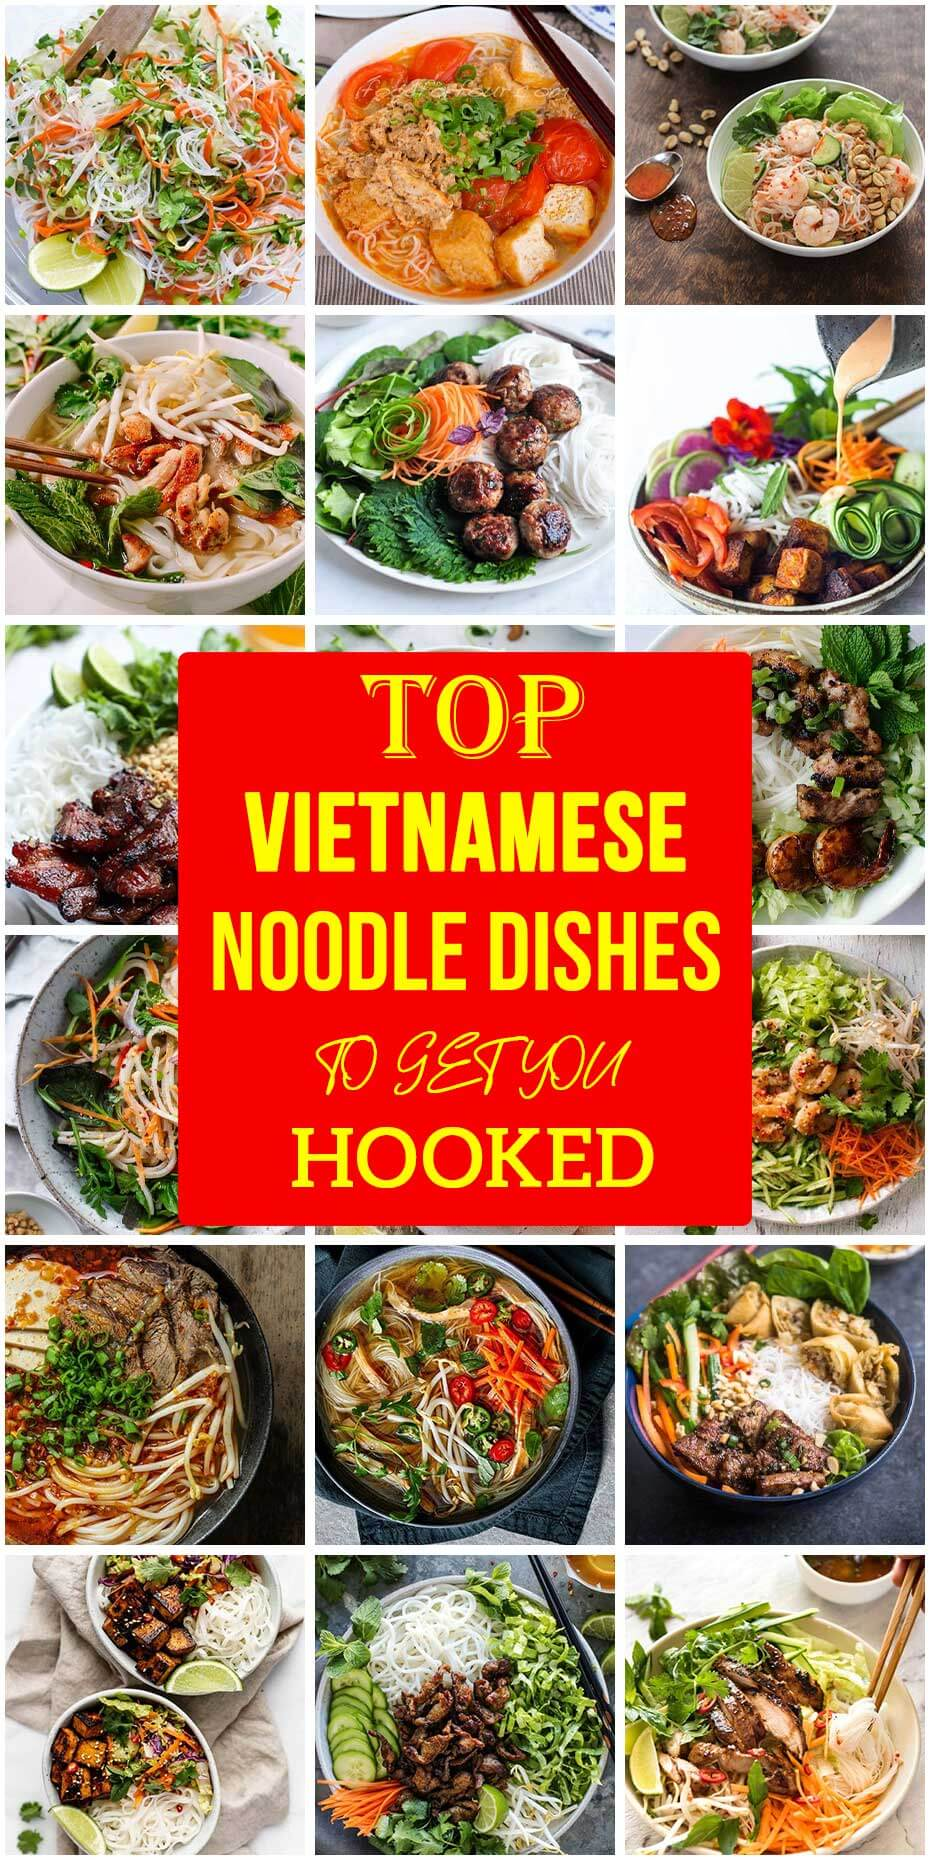 Top 30 Vietnamese Noodle Dishes To Get You Hooked